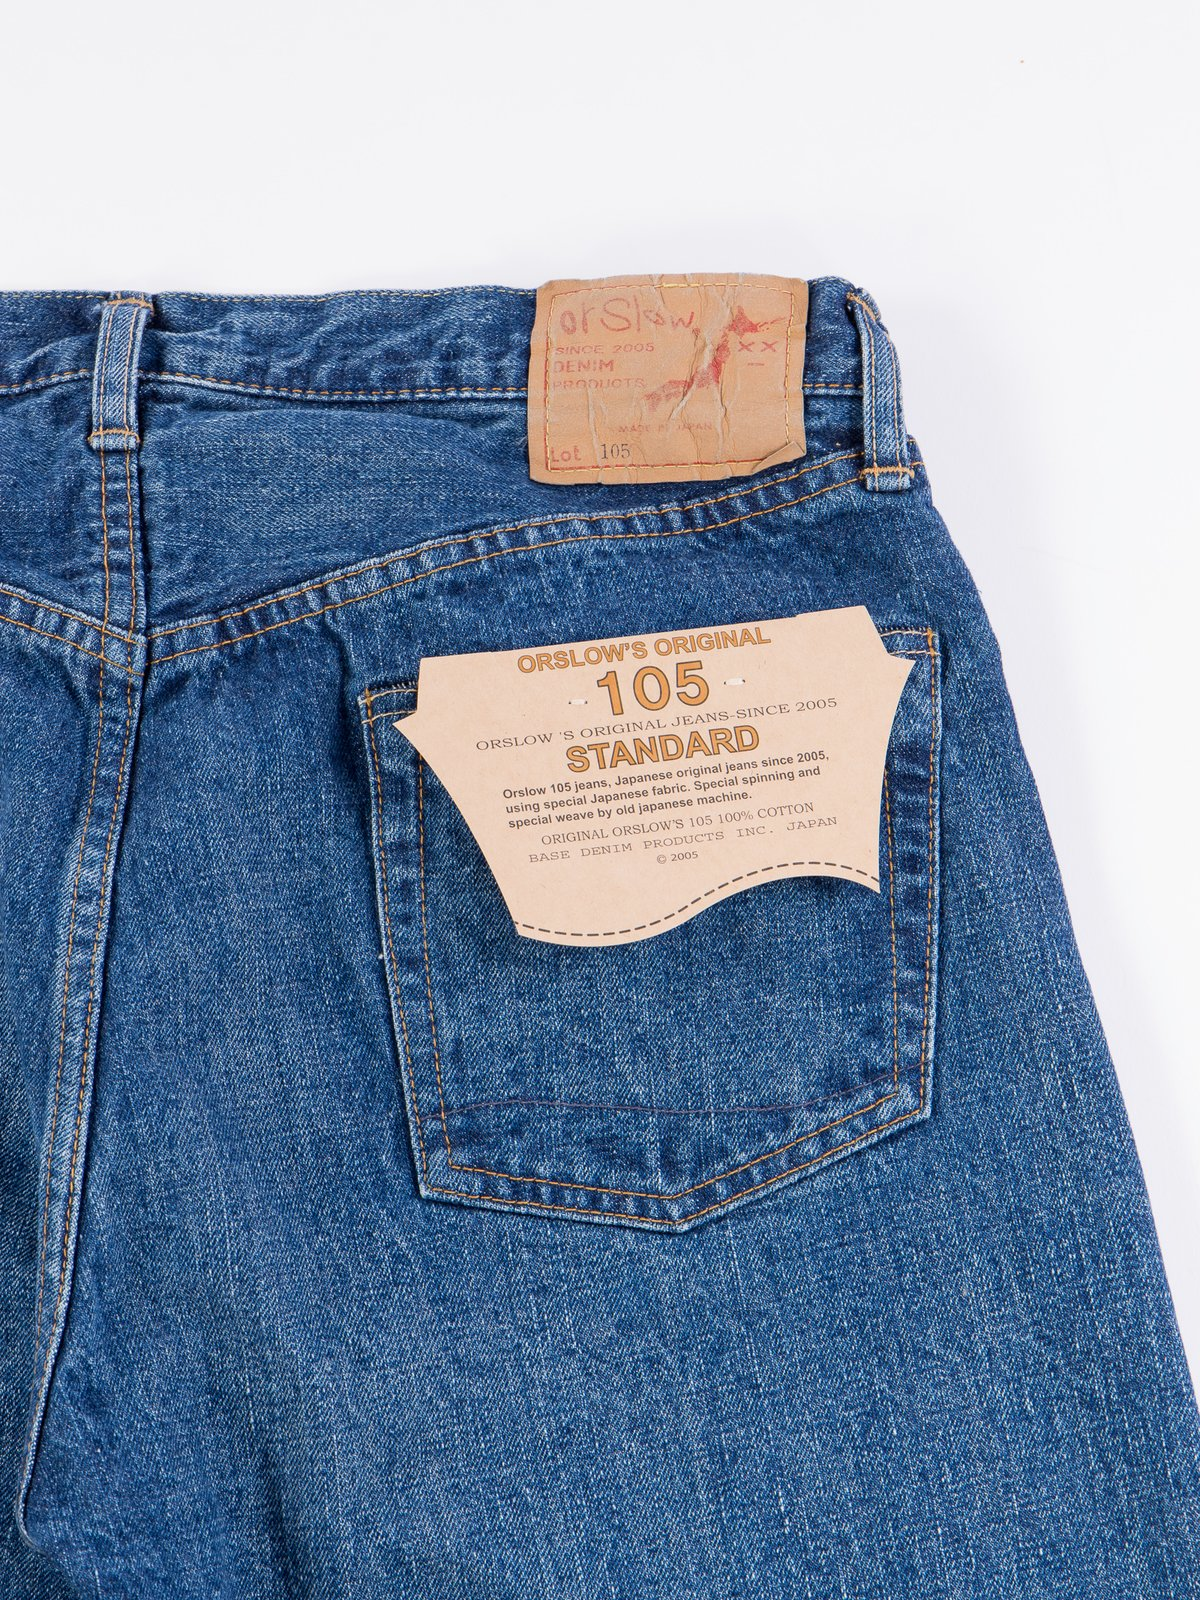 2 Year Wash 105 Standard 5 Pocket Jean - Image 7